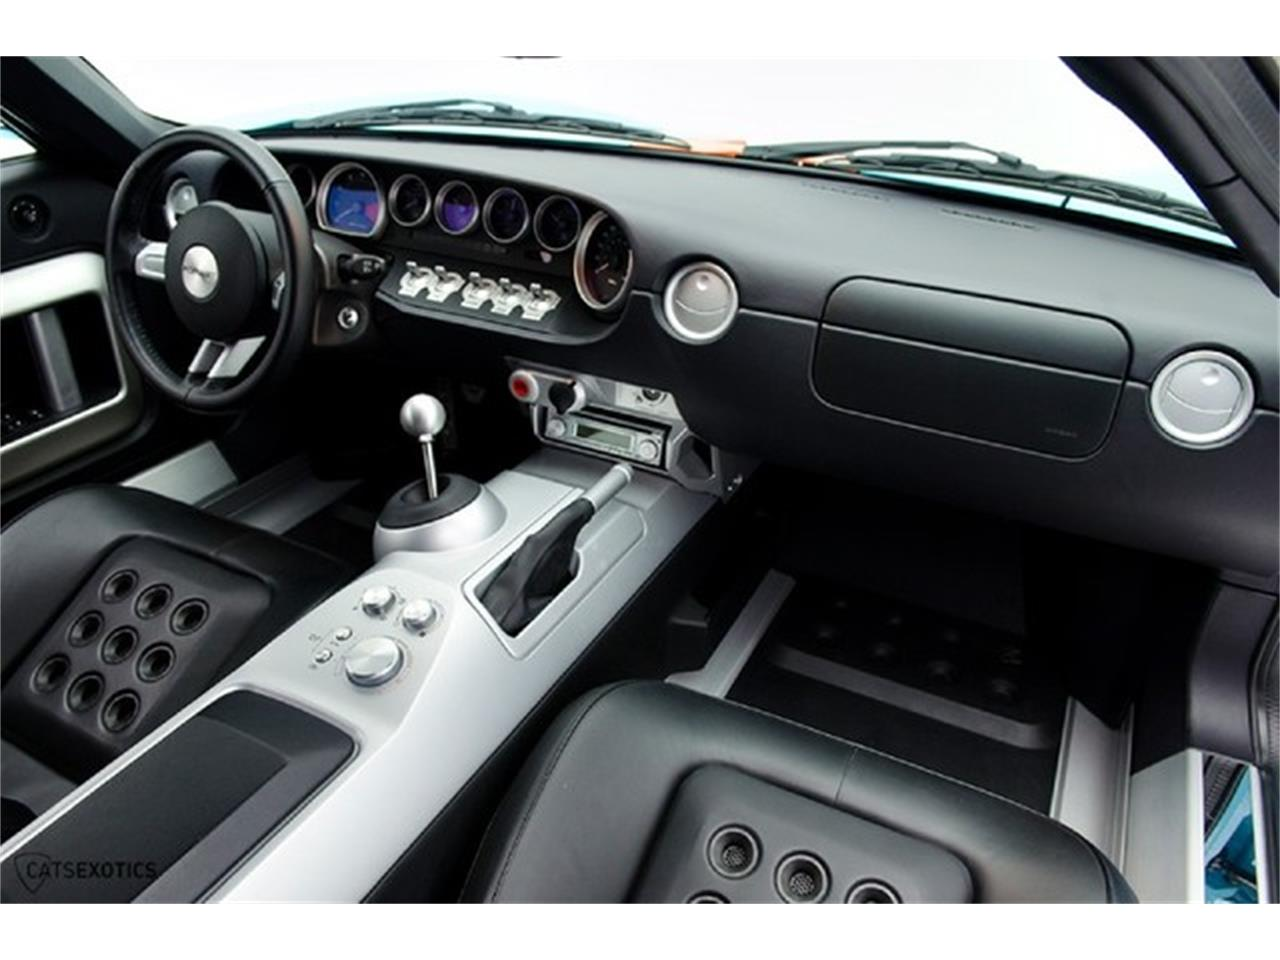 Large Picture of '06 Ford GT located in Seattle Washington Auction Vehicle - J1KC